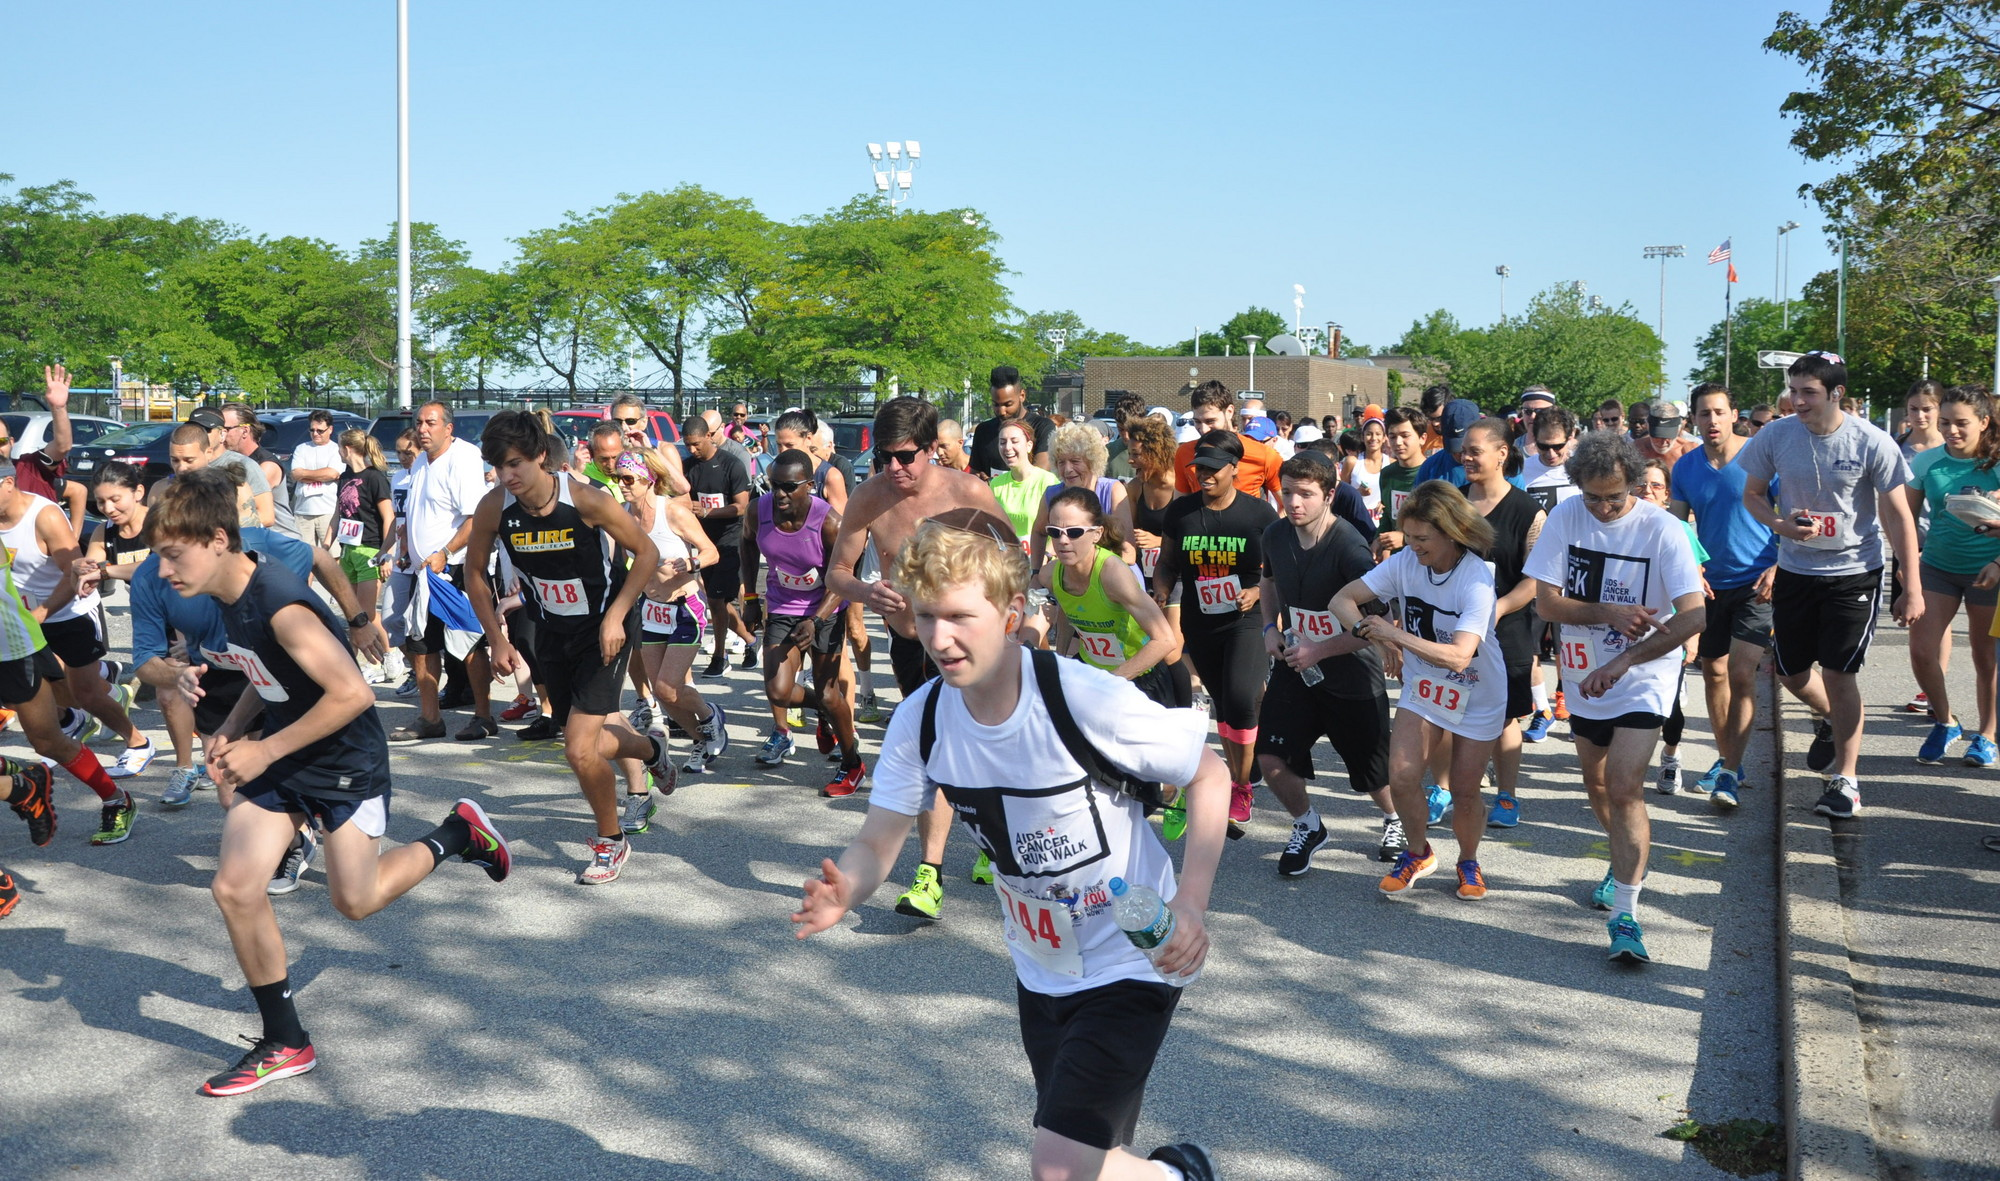 The Richard Brodsky Foundation raised $2,300 for multiple organizations through its annual 5K run/walk. The start of the race at North Woodmere County Park.